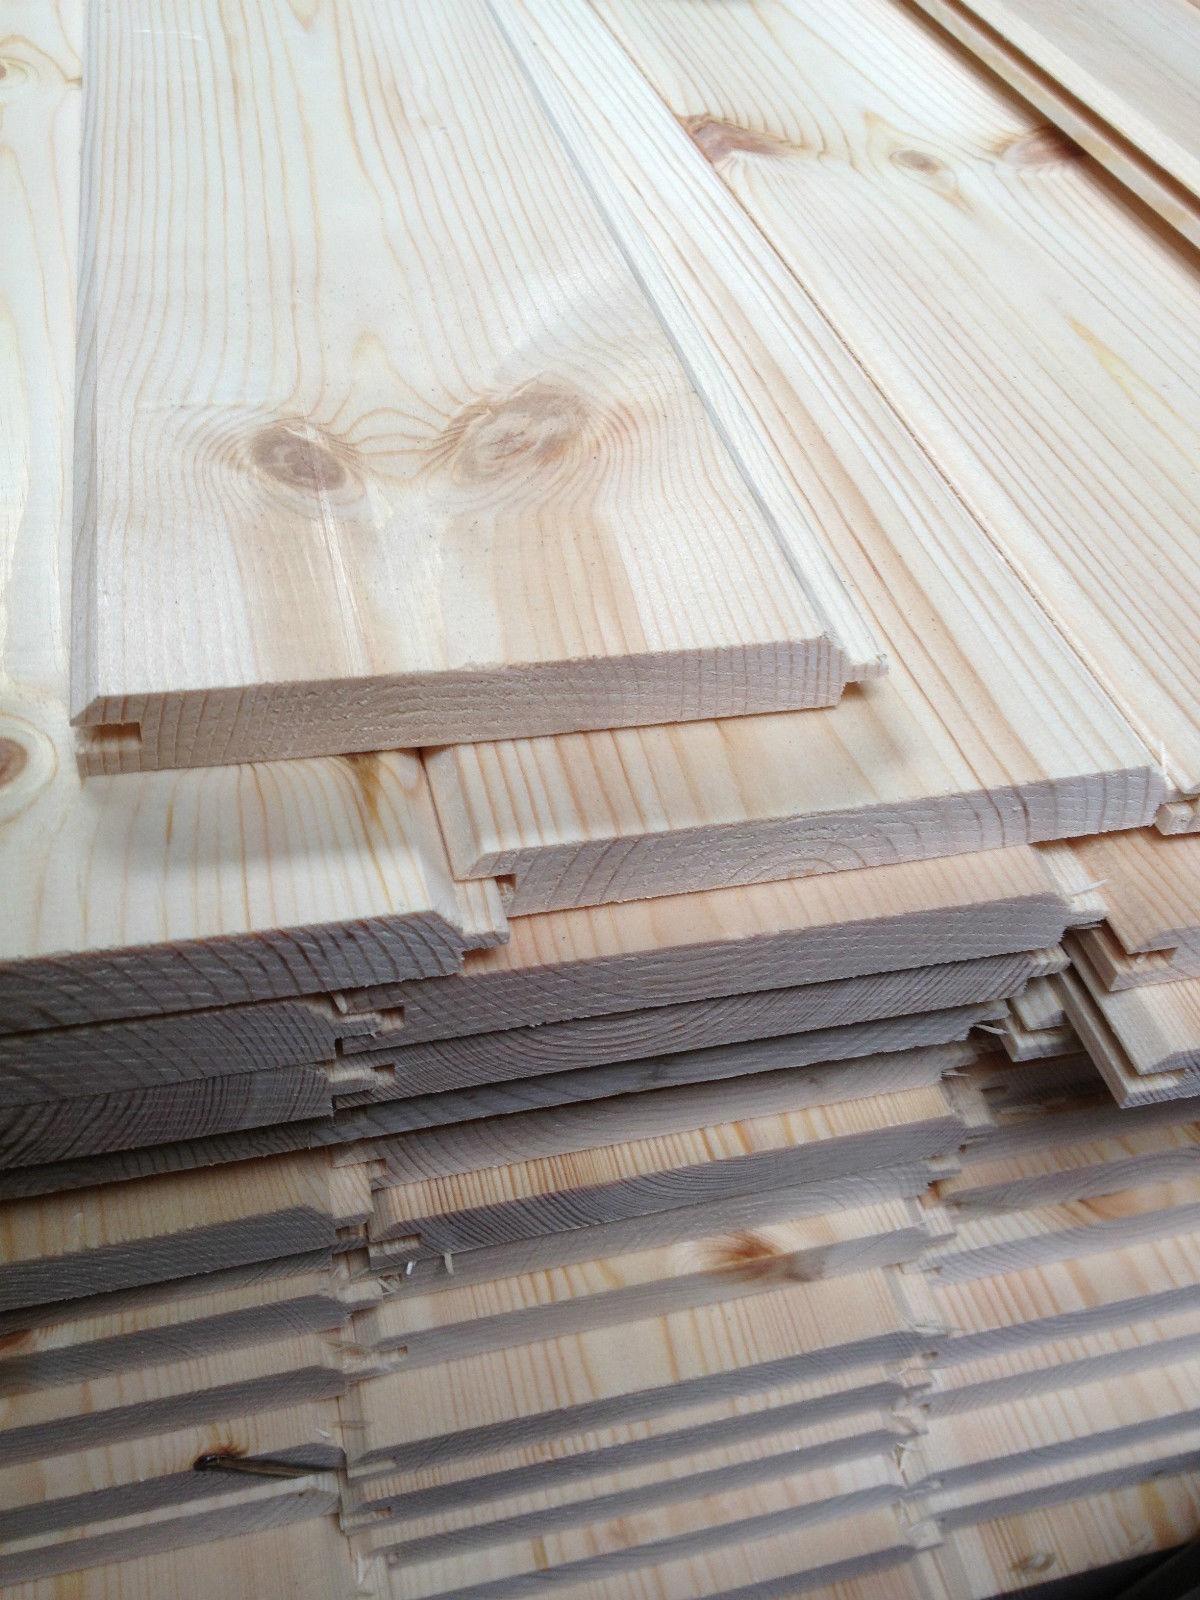 first image for V-Groove cladding